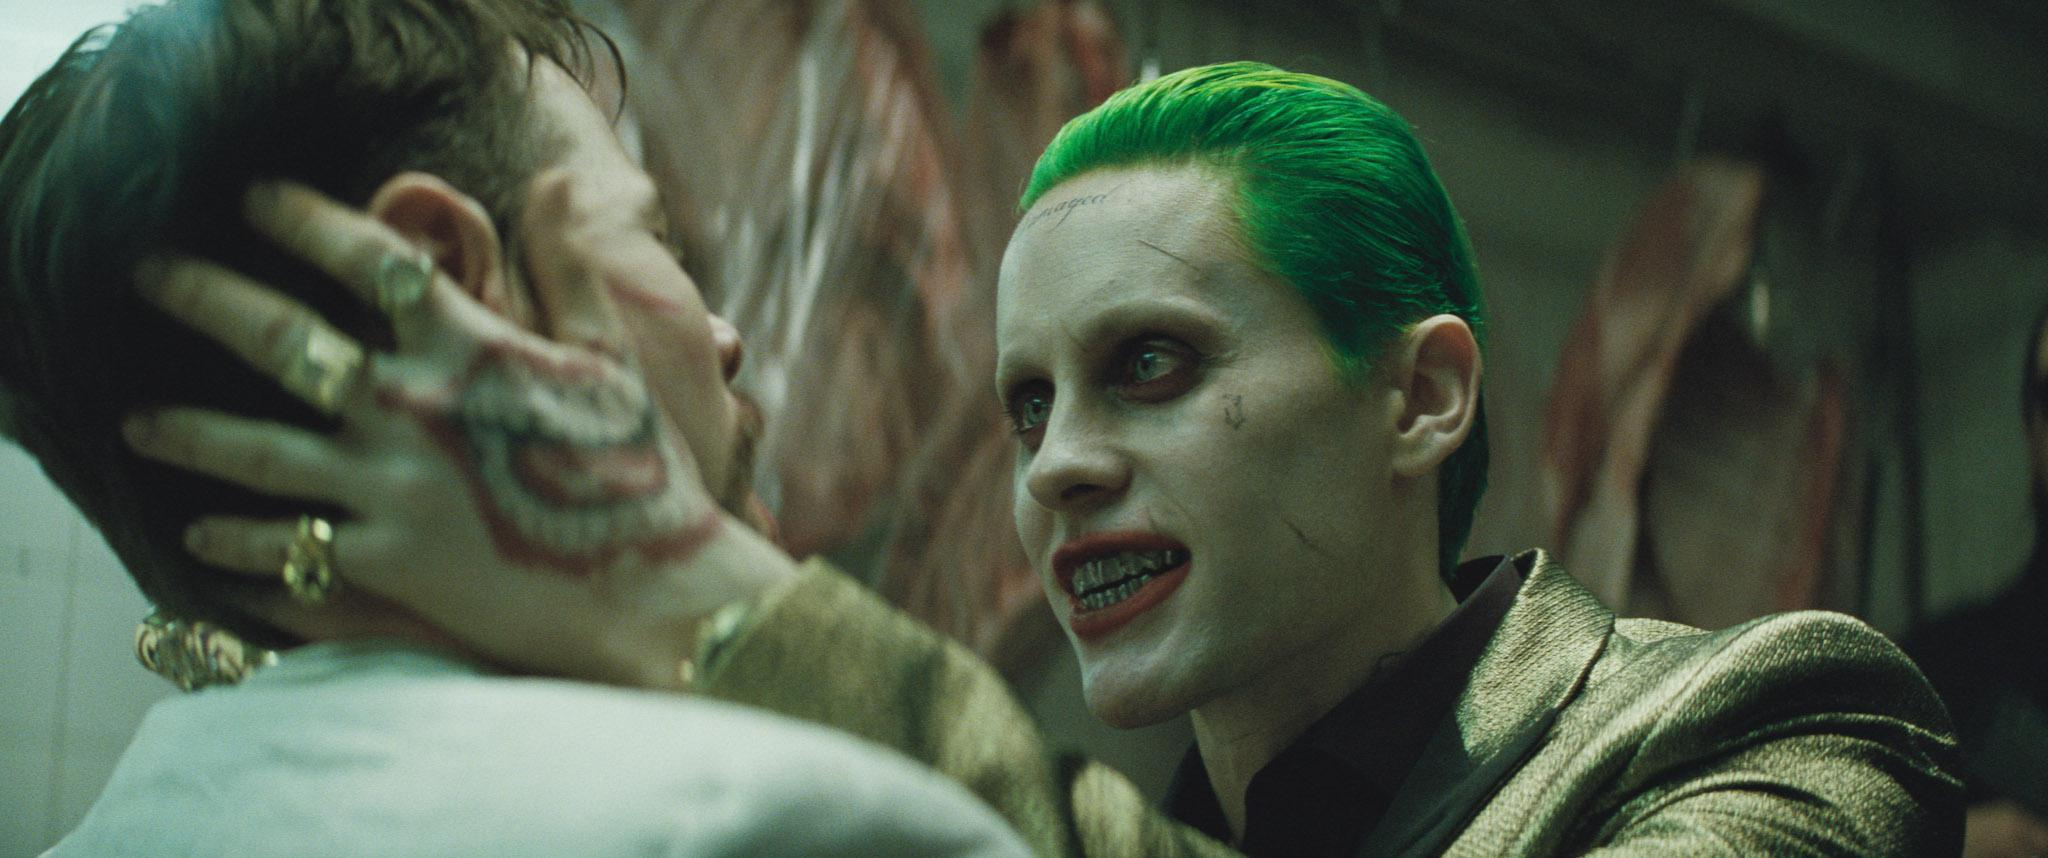 Will Smith Tells Disturbing Story About Jared Leto from Suicide Squad Set